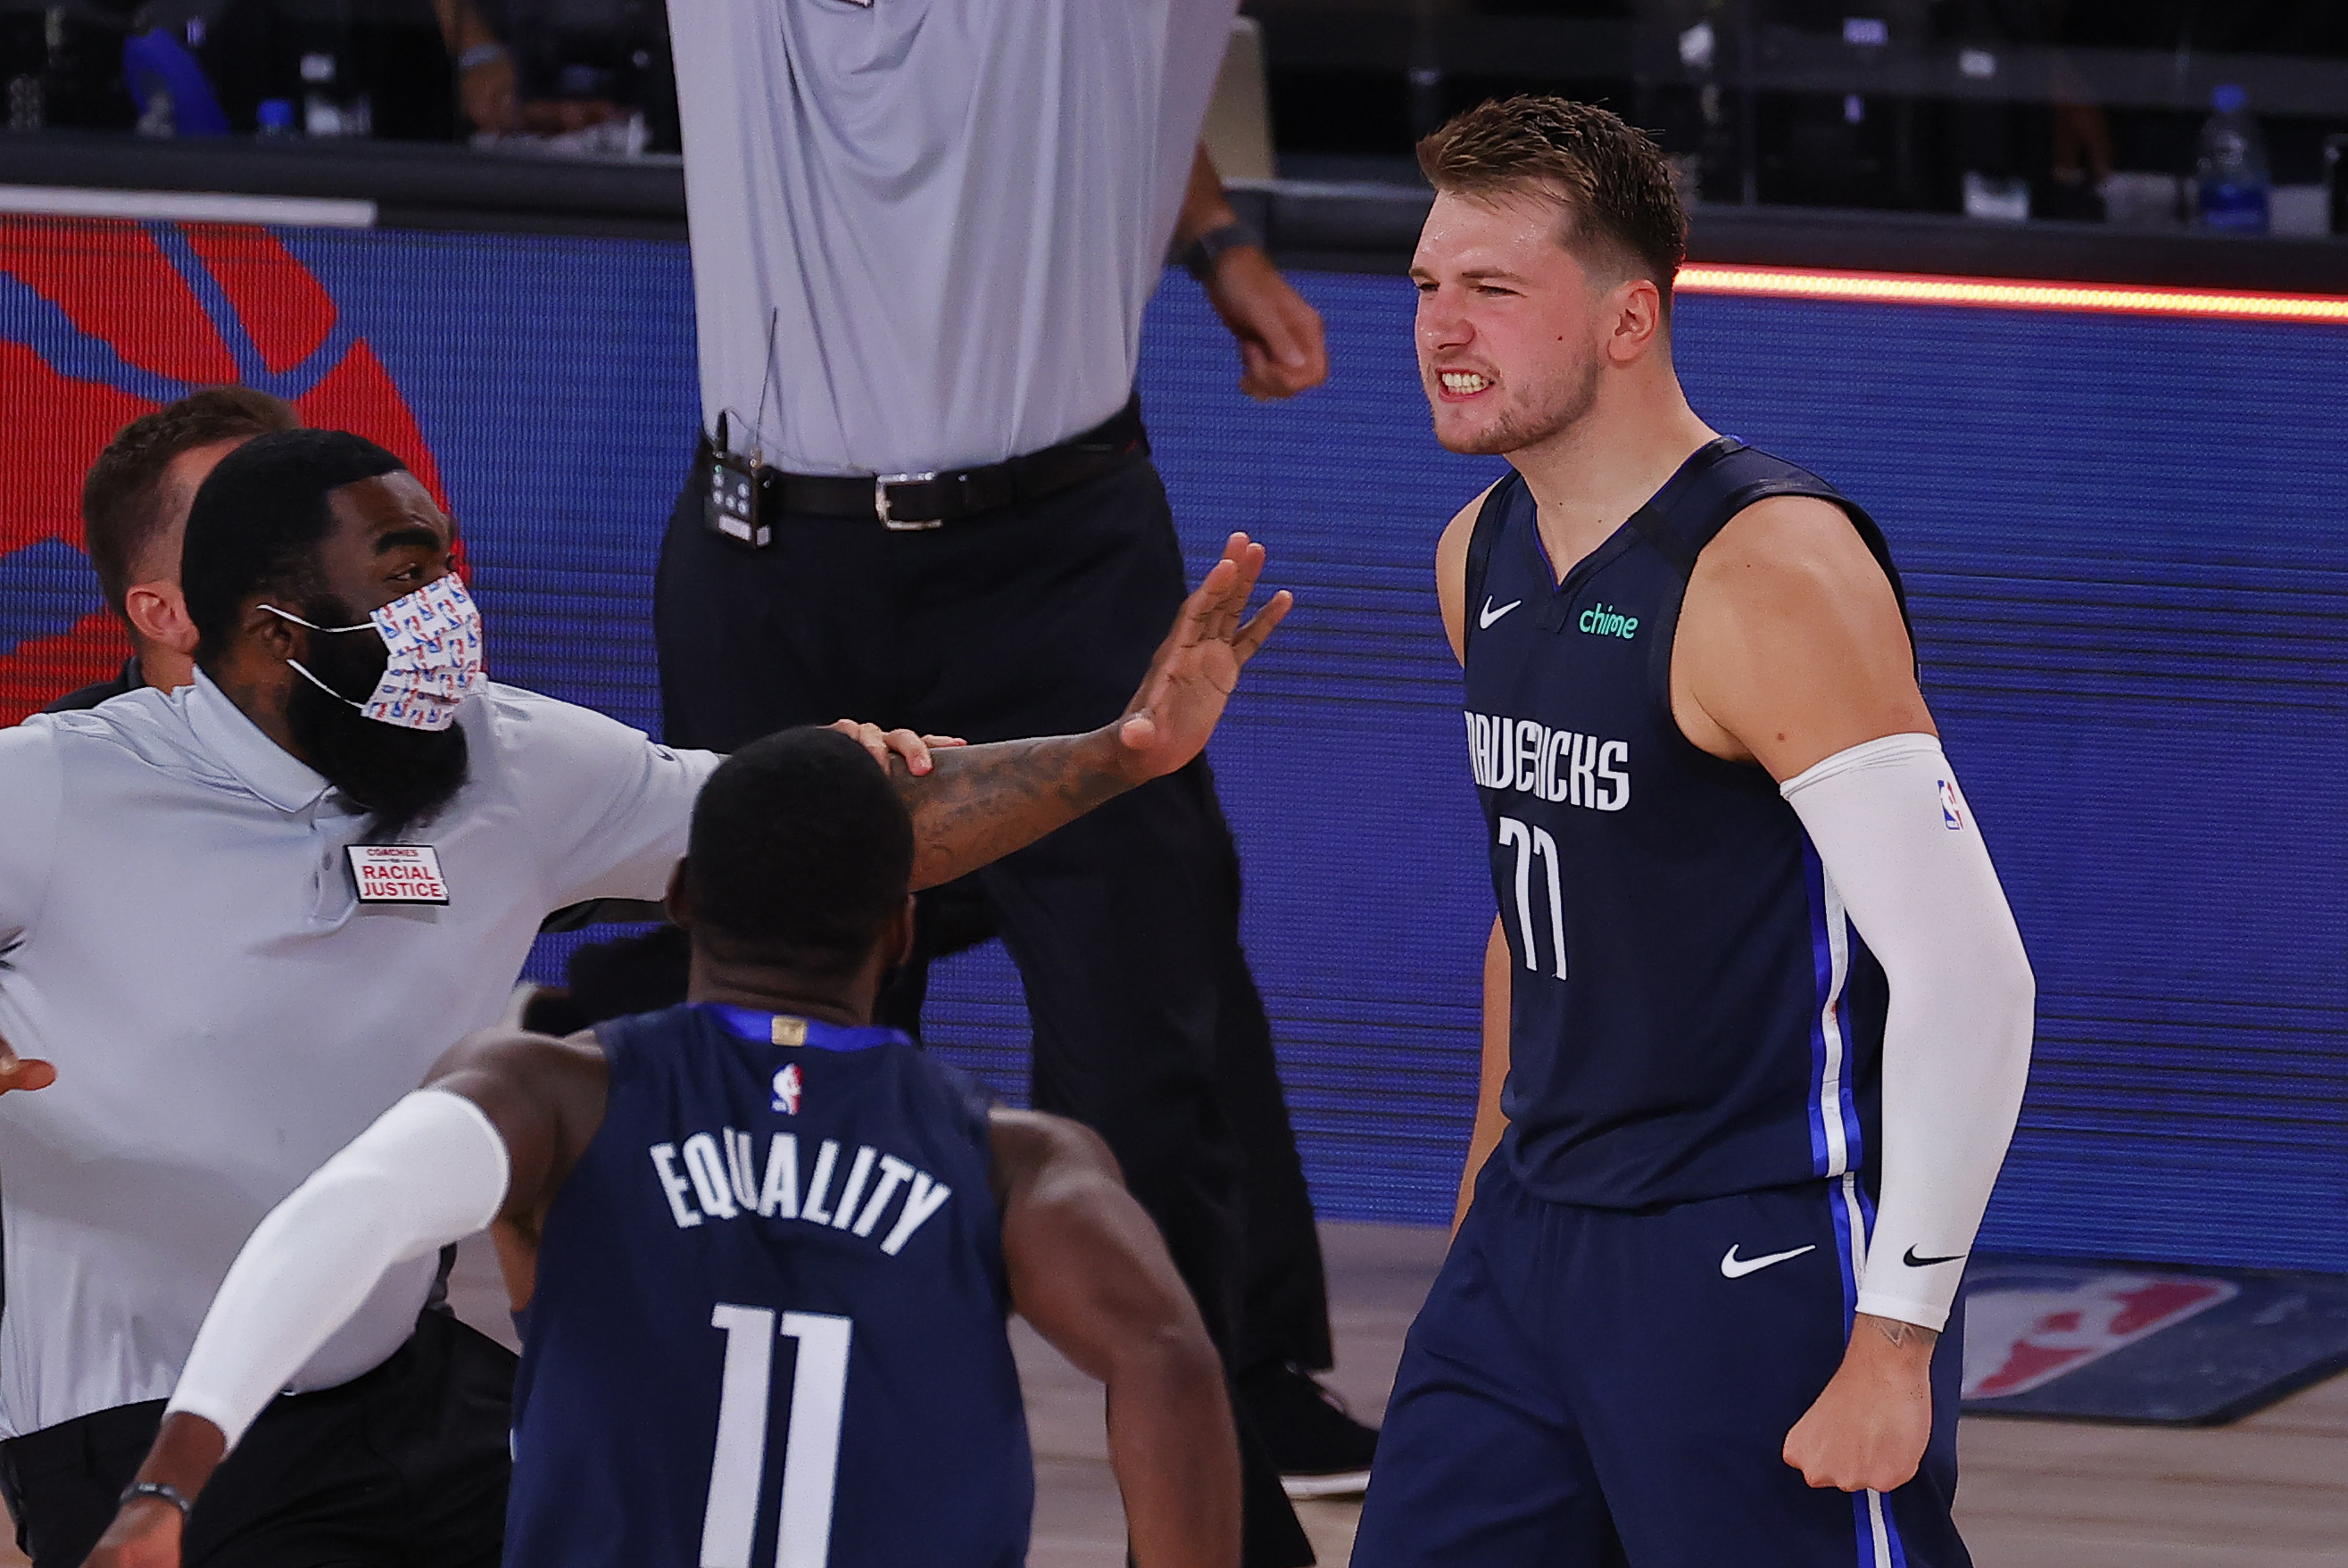 Luka Doncic's Mother Highlights List of Reactions to Son's Wild Game-Winning Shot